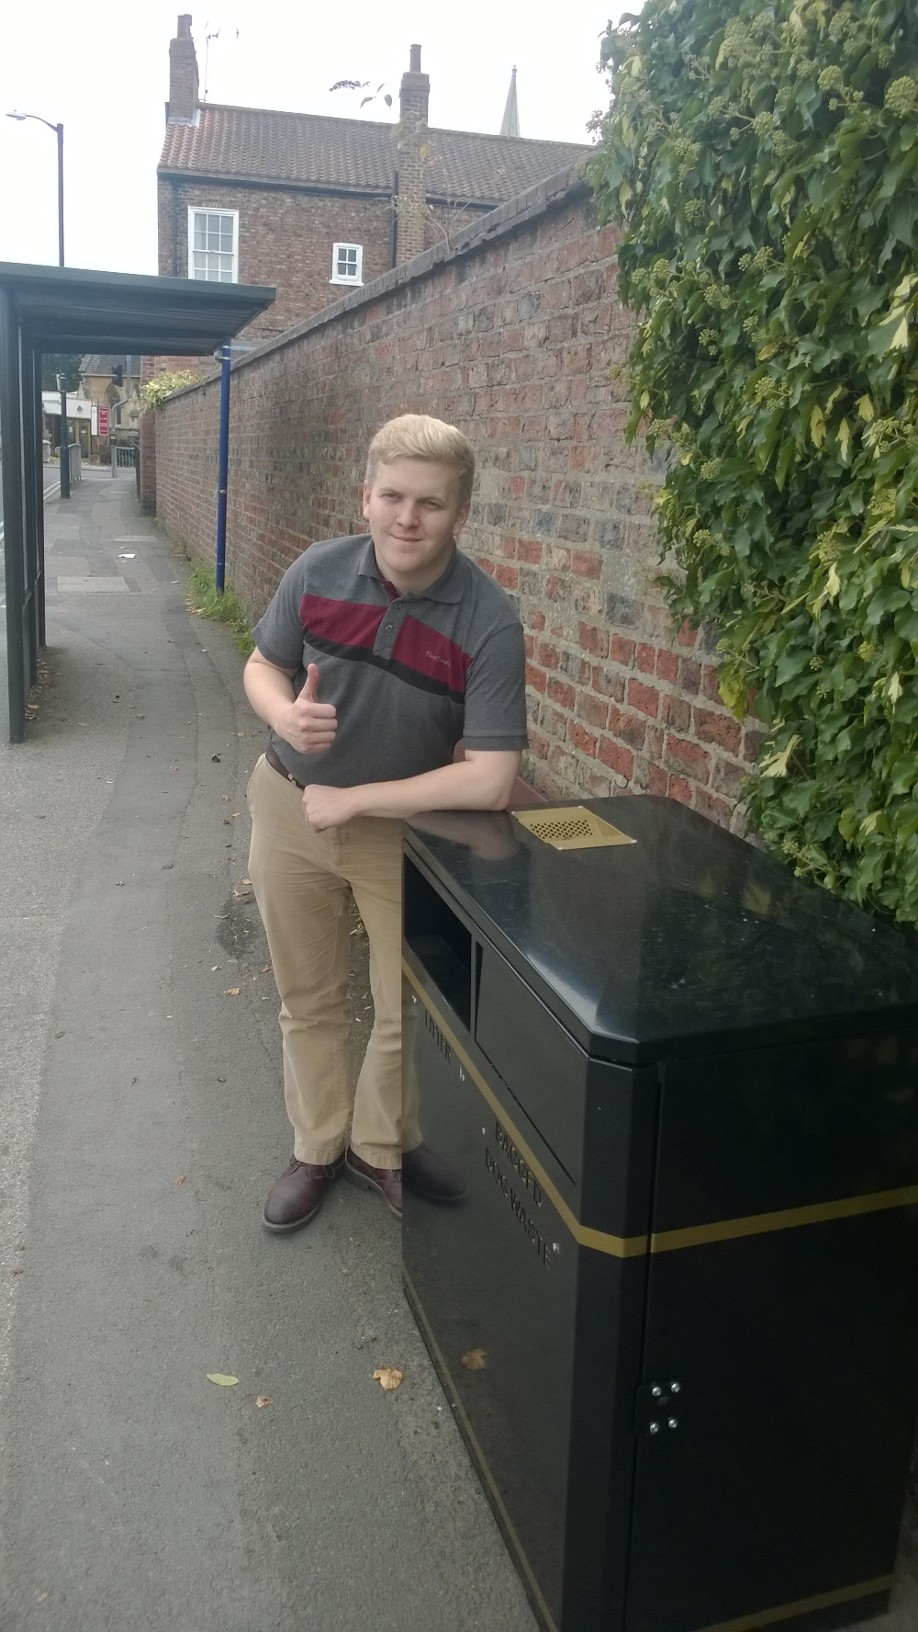 New bin at St Helens Road bus stop